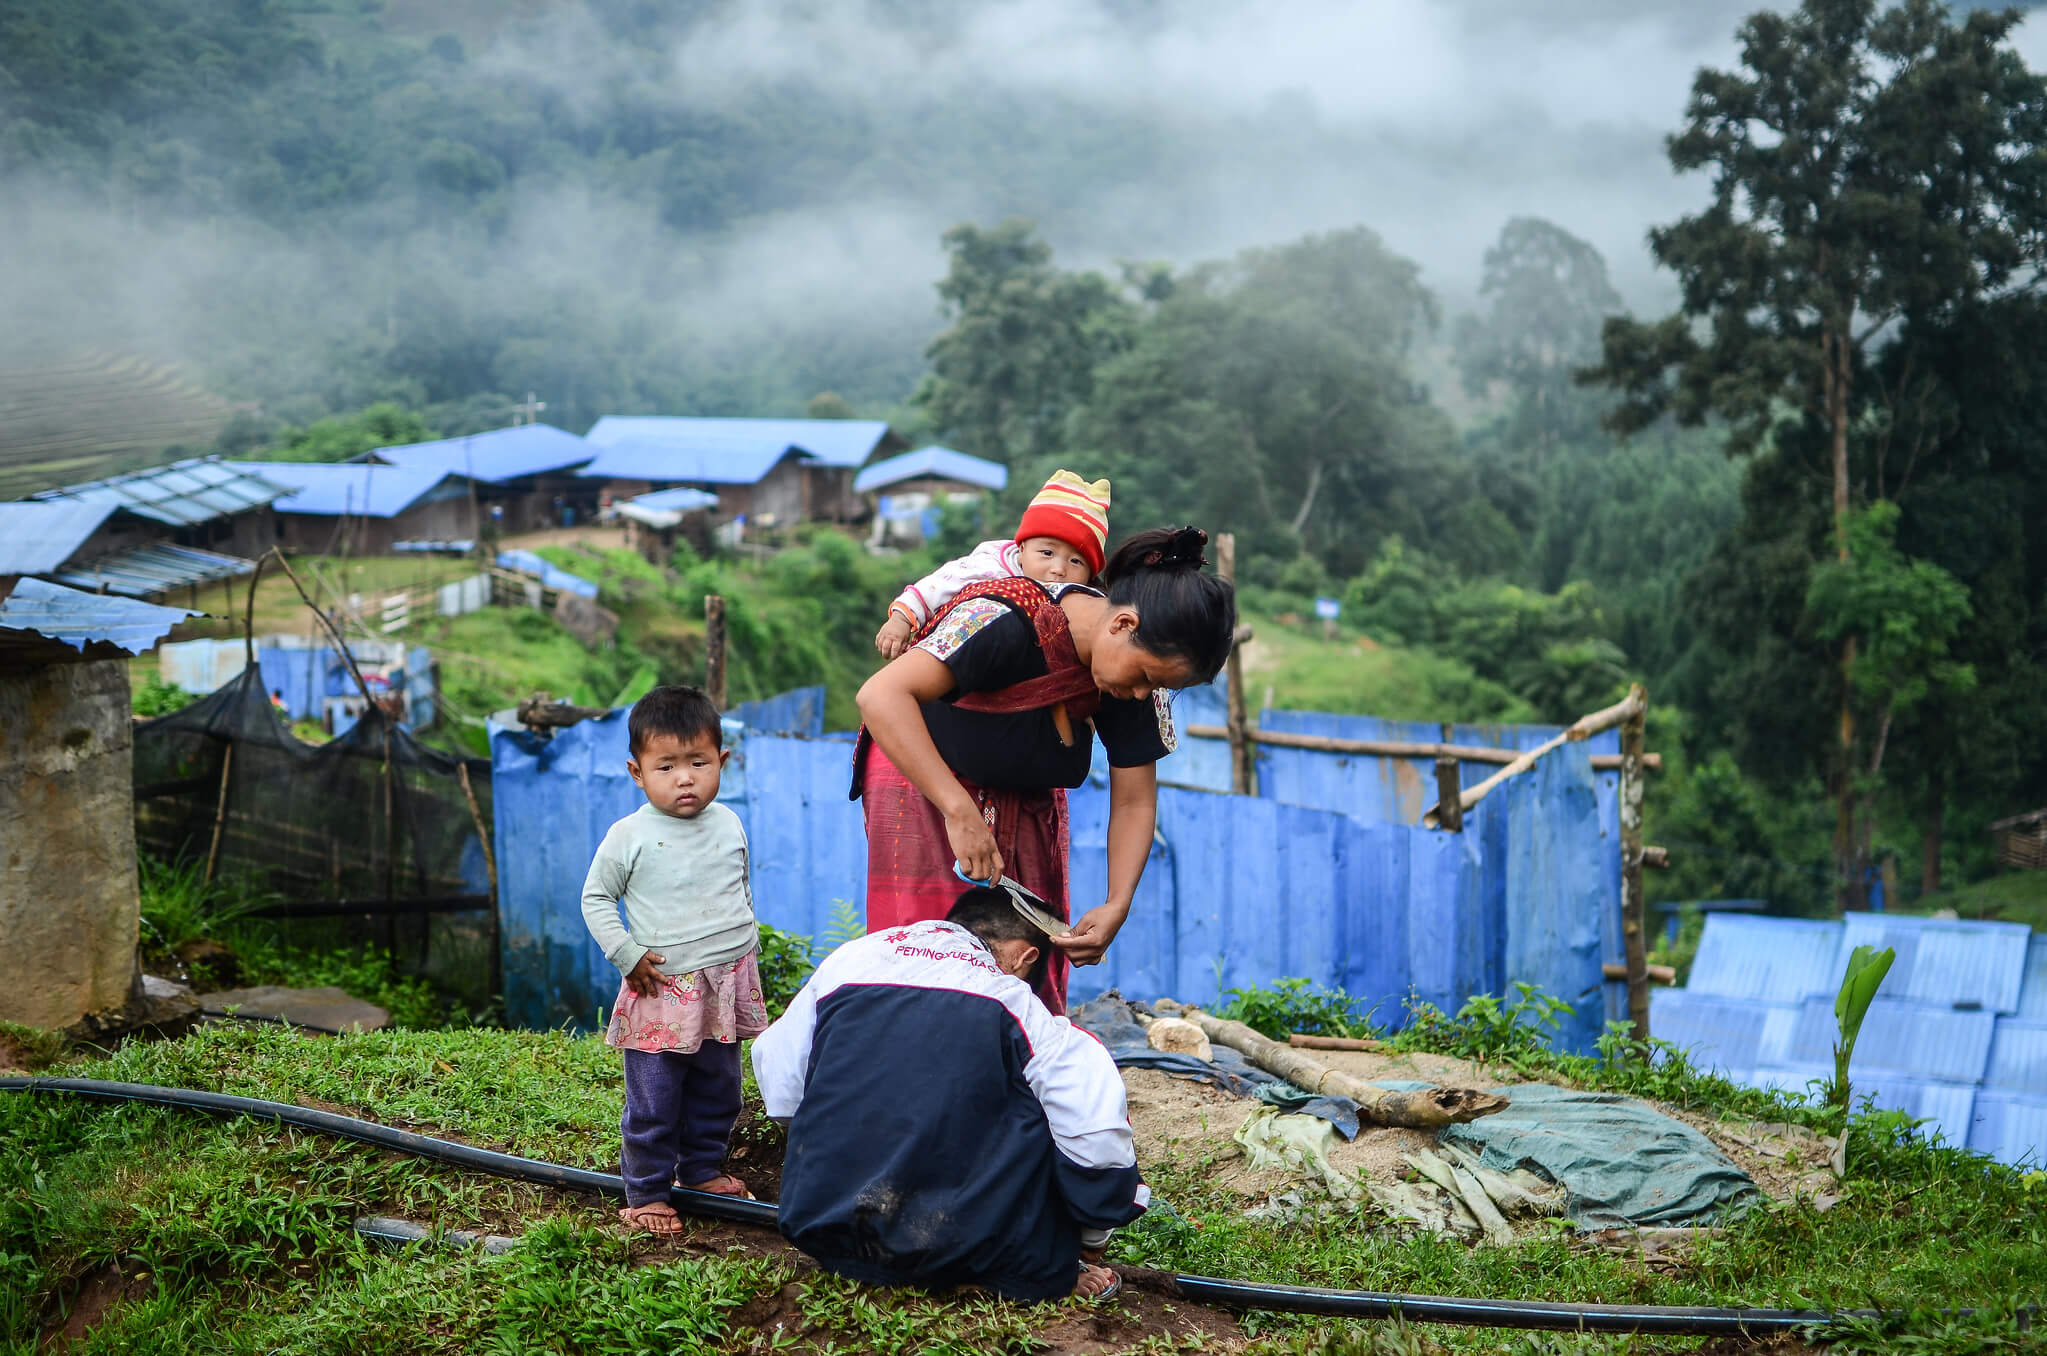 'There was very intense gunfire' says 30 year old Galau Lu Mai about the day she decided to flee to the safety of an IDP camp. Photo : Gyung Dau / Trócaire